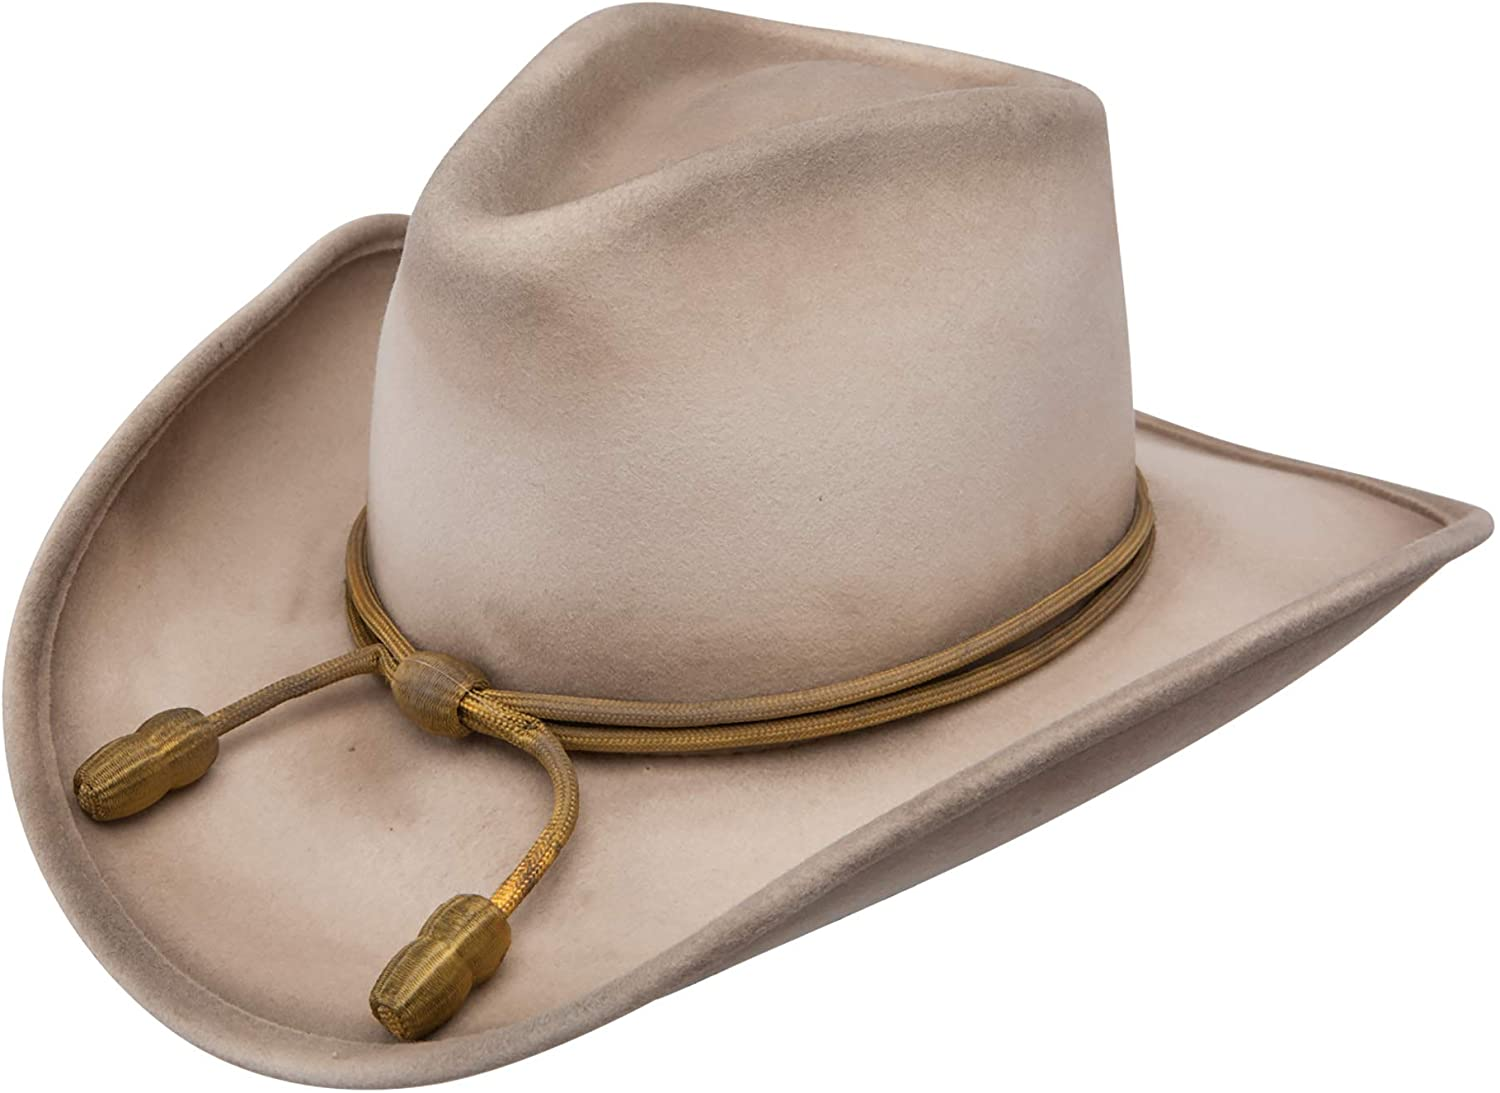 Stetson Men's Fort Crushable Wool Leather Hatband Cowboy Hat - Silverbelly